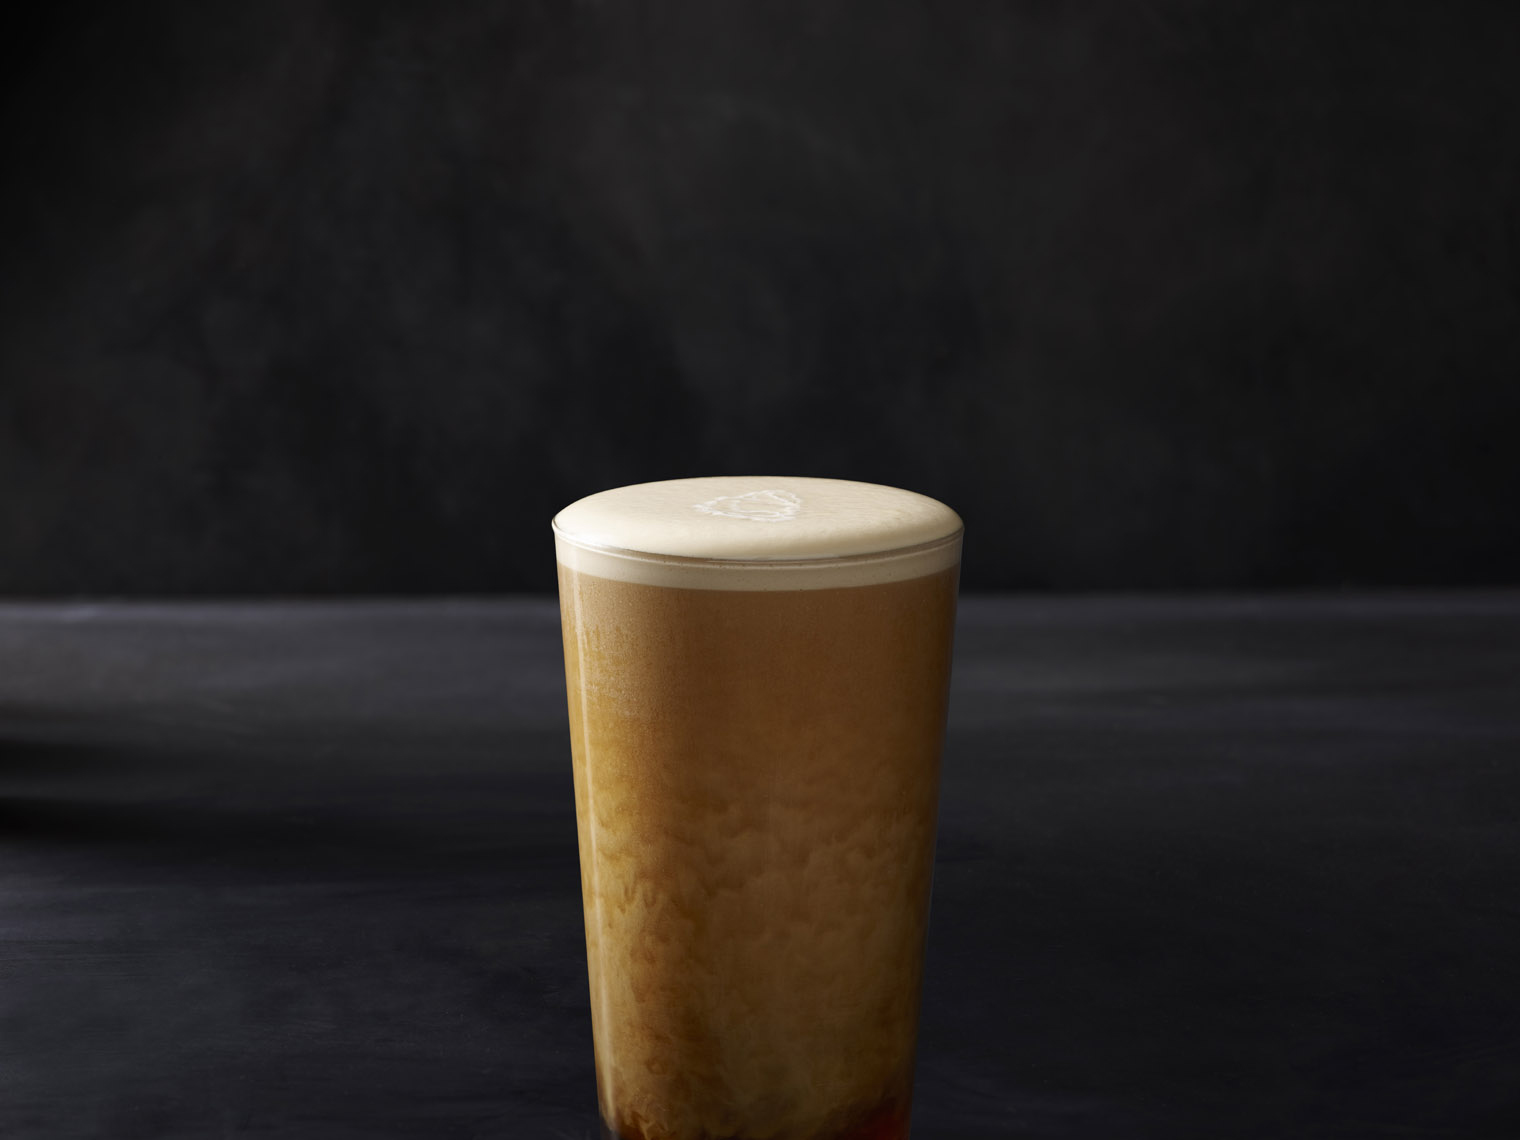 Robyn Valarik San Francisco Food & Drink Stylist - Starbucks, coffee, nitro, cold-brew, foam, froth, cold, caffeine, sweat, condensation, food-photography